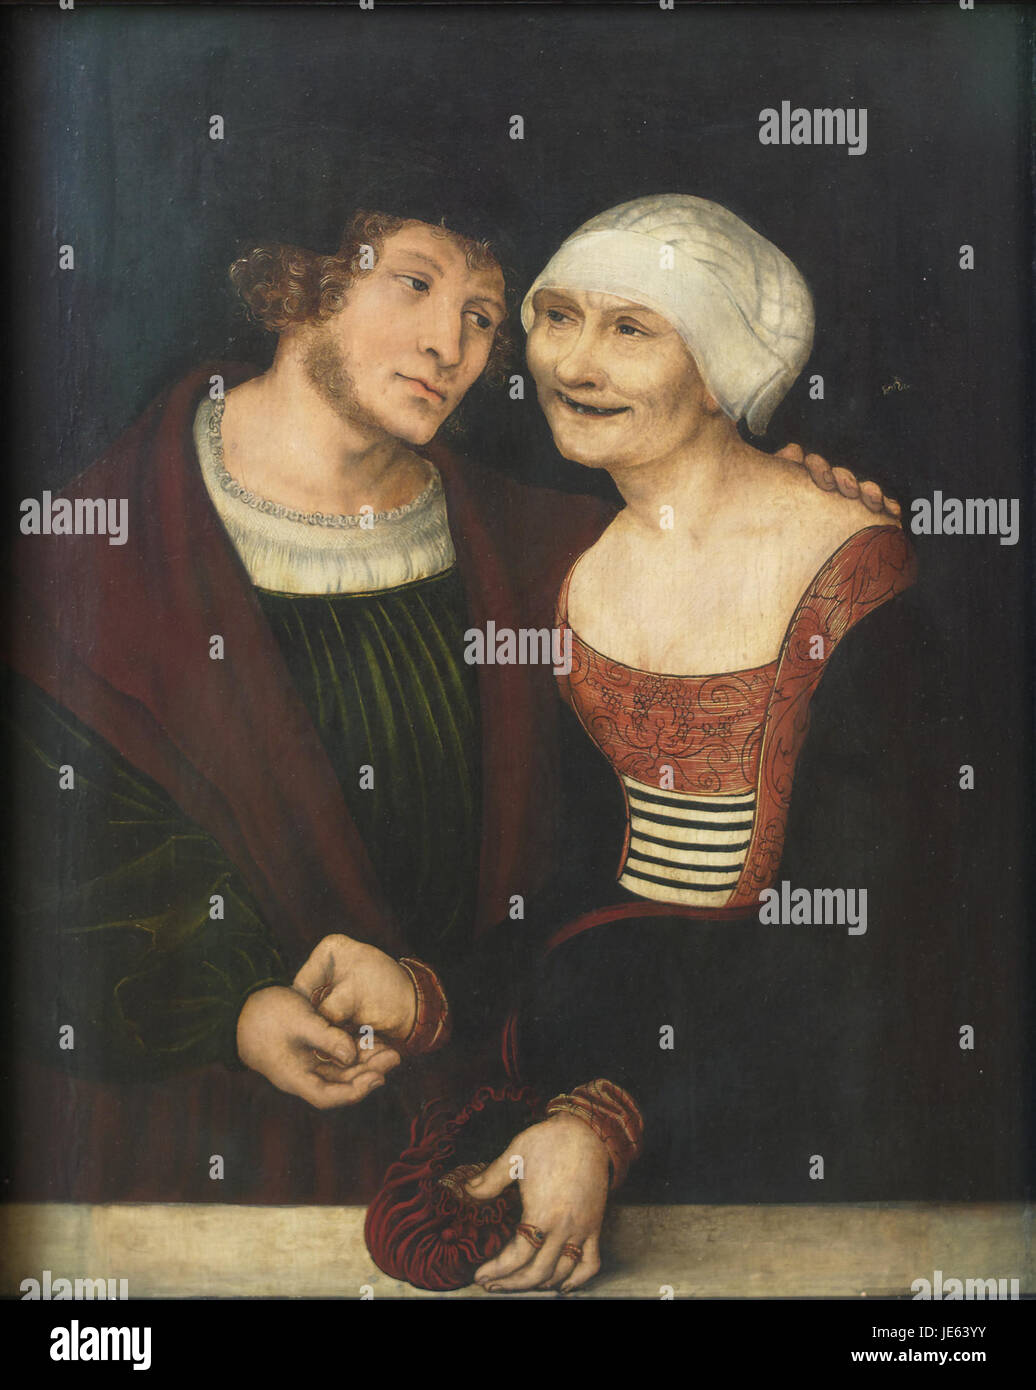 The Ill-Matched Couple Lucas Cranach the Elder - Stock Image